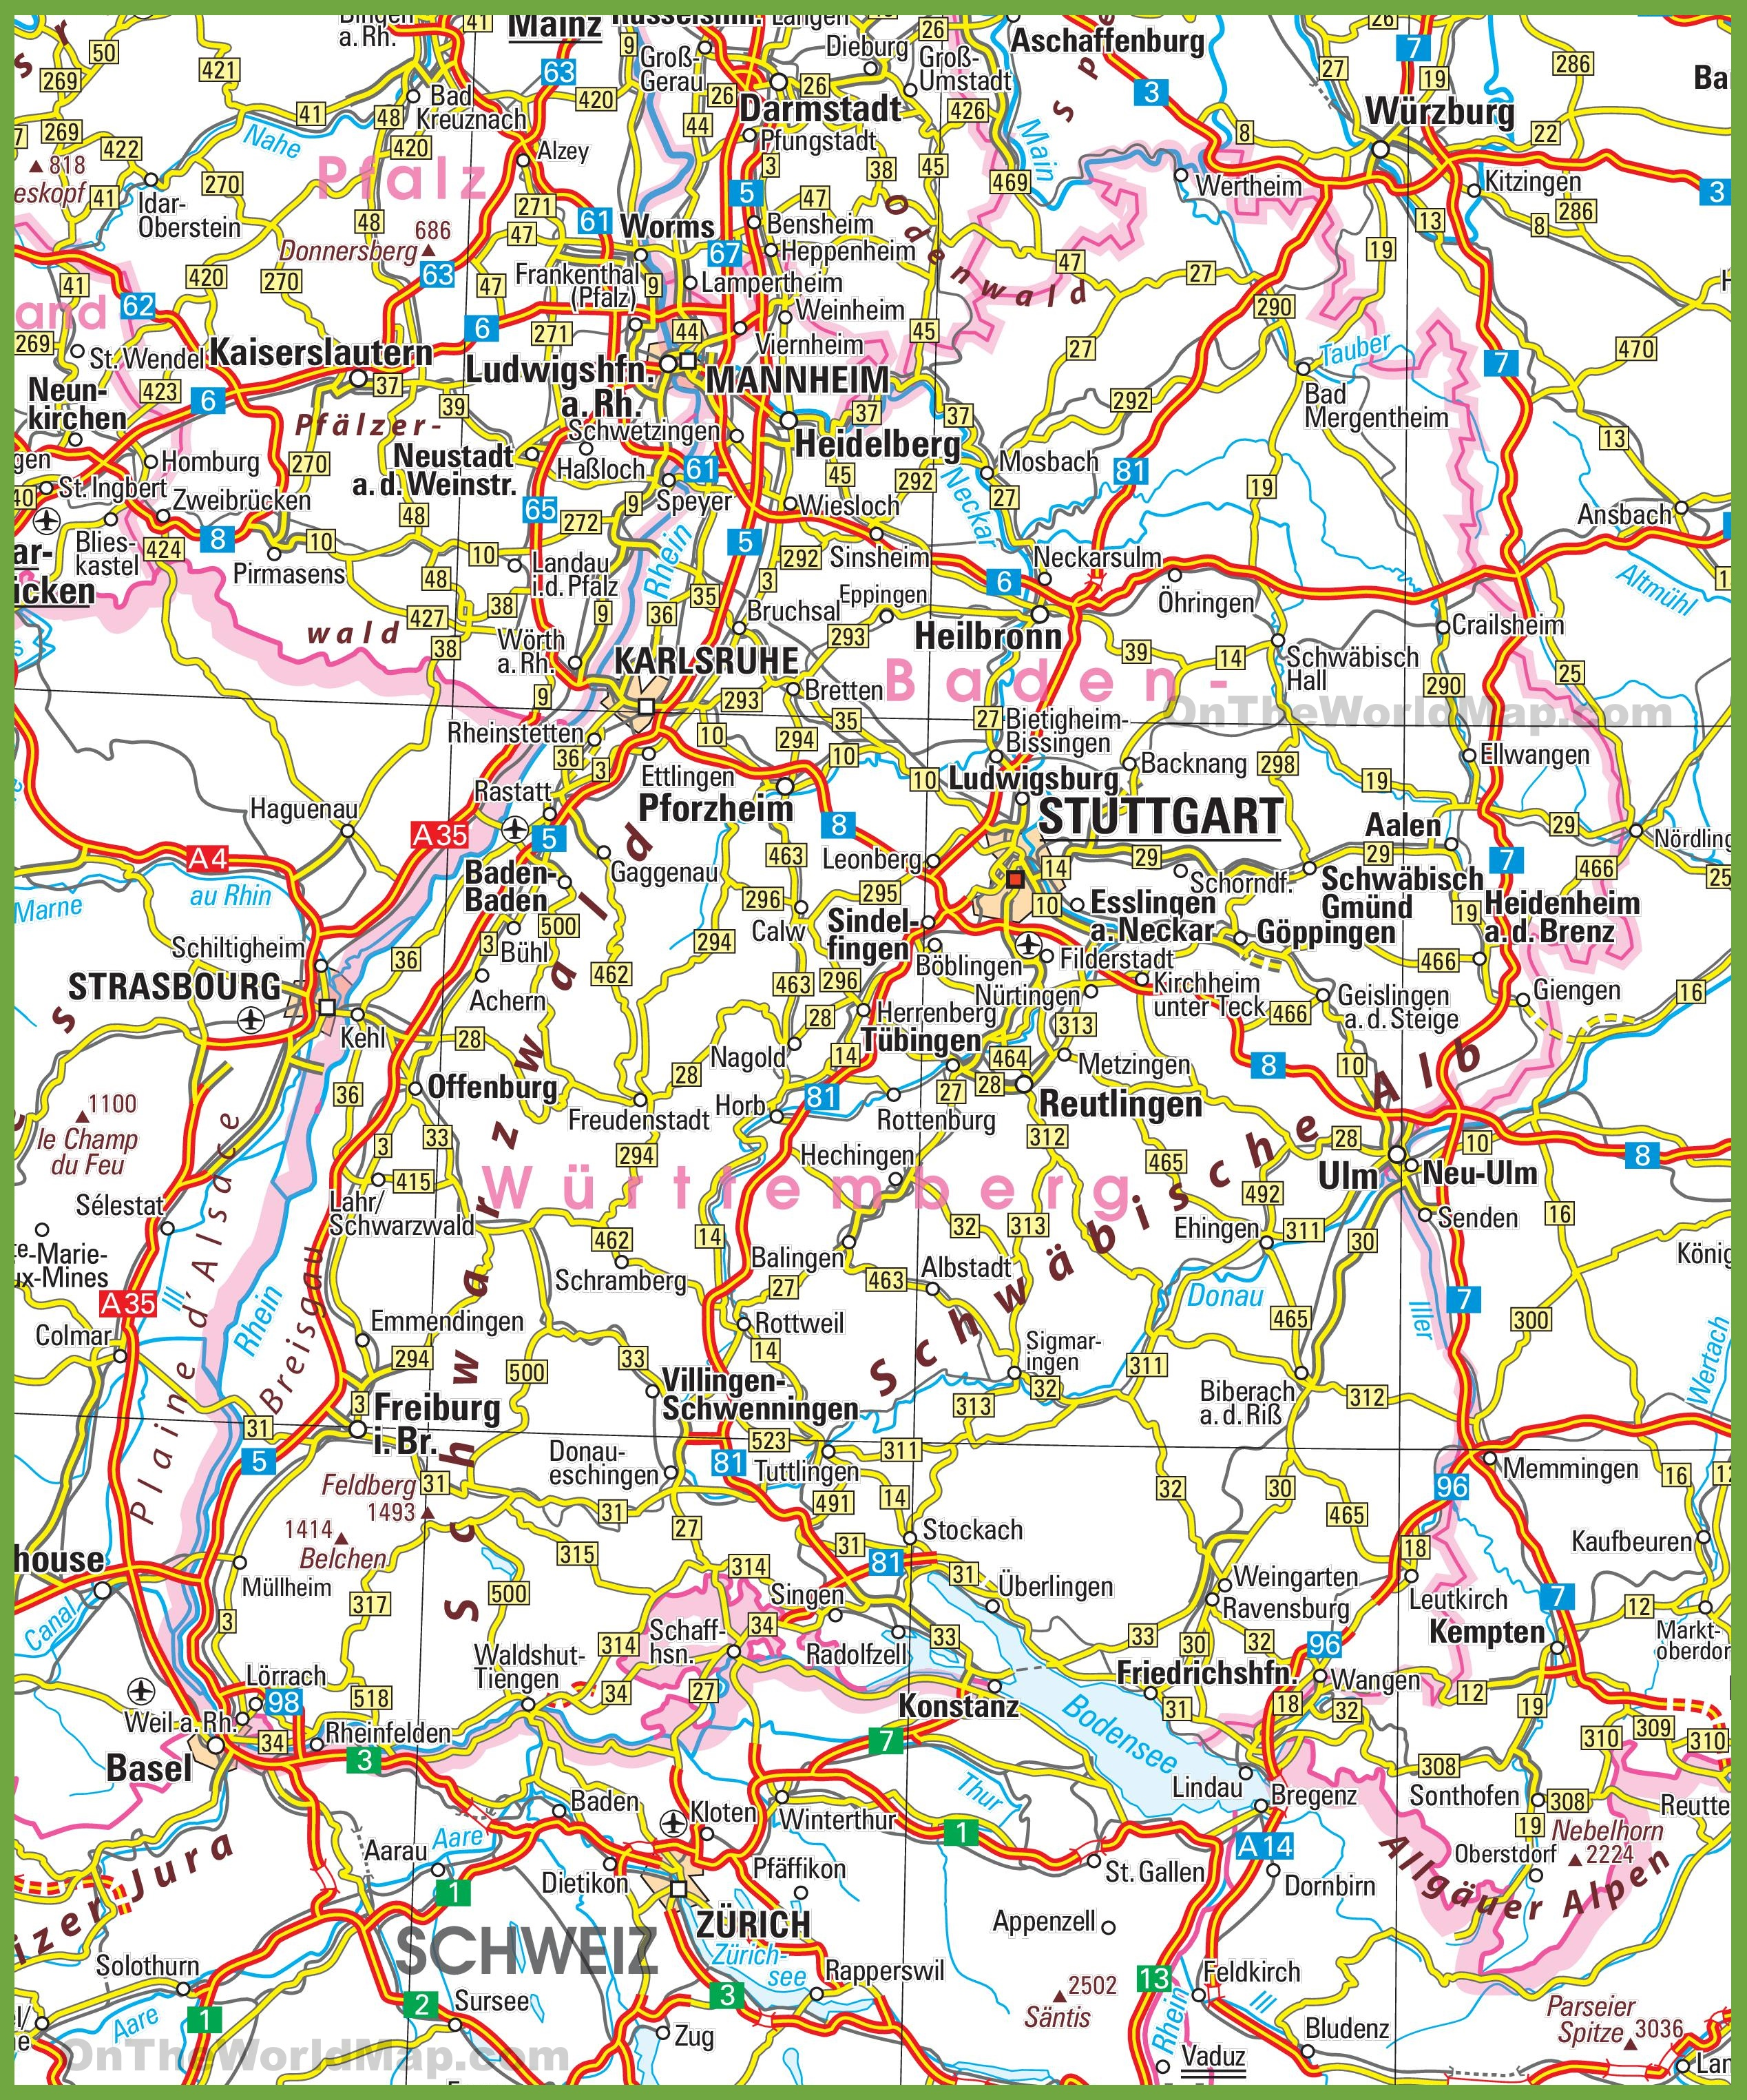 BadenWrttemberg road map